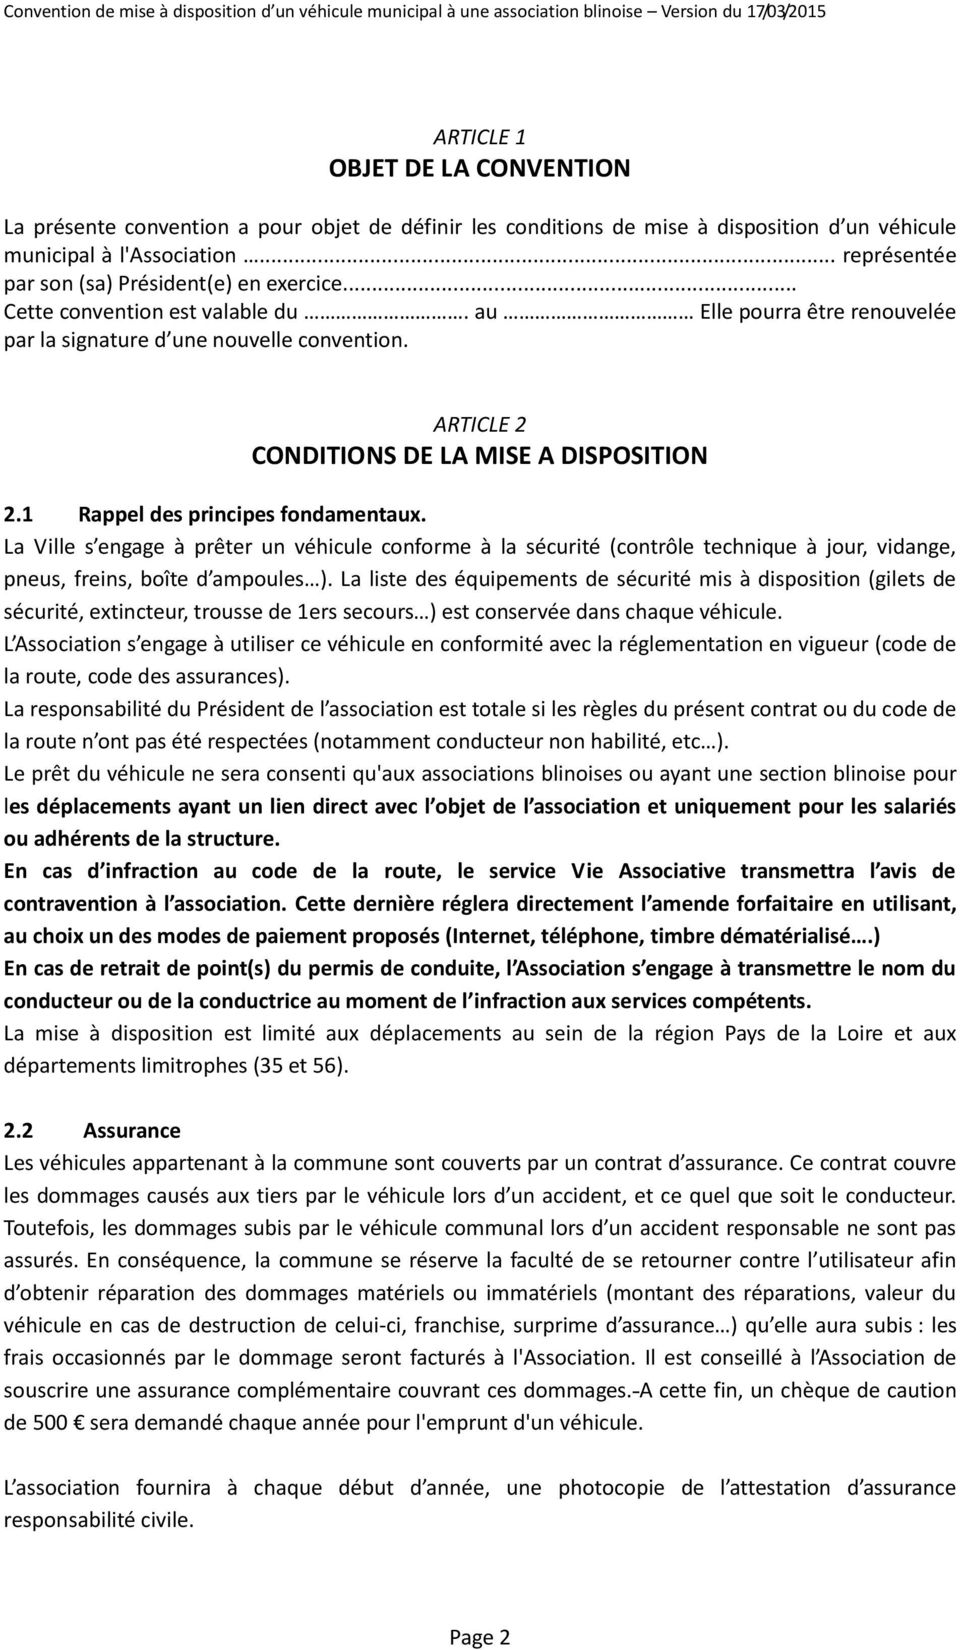 ARTICLE 2 CONDITIONS DE LA MISE A DISPOSITION 2.1 Rappel des principes fondamentaux.